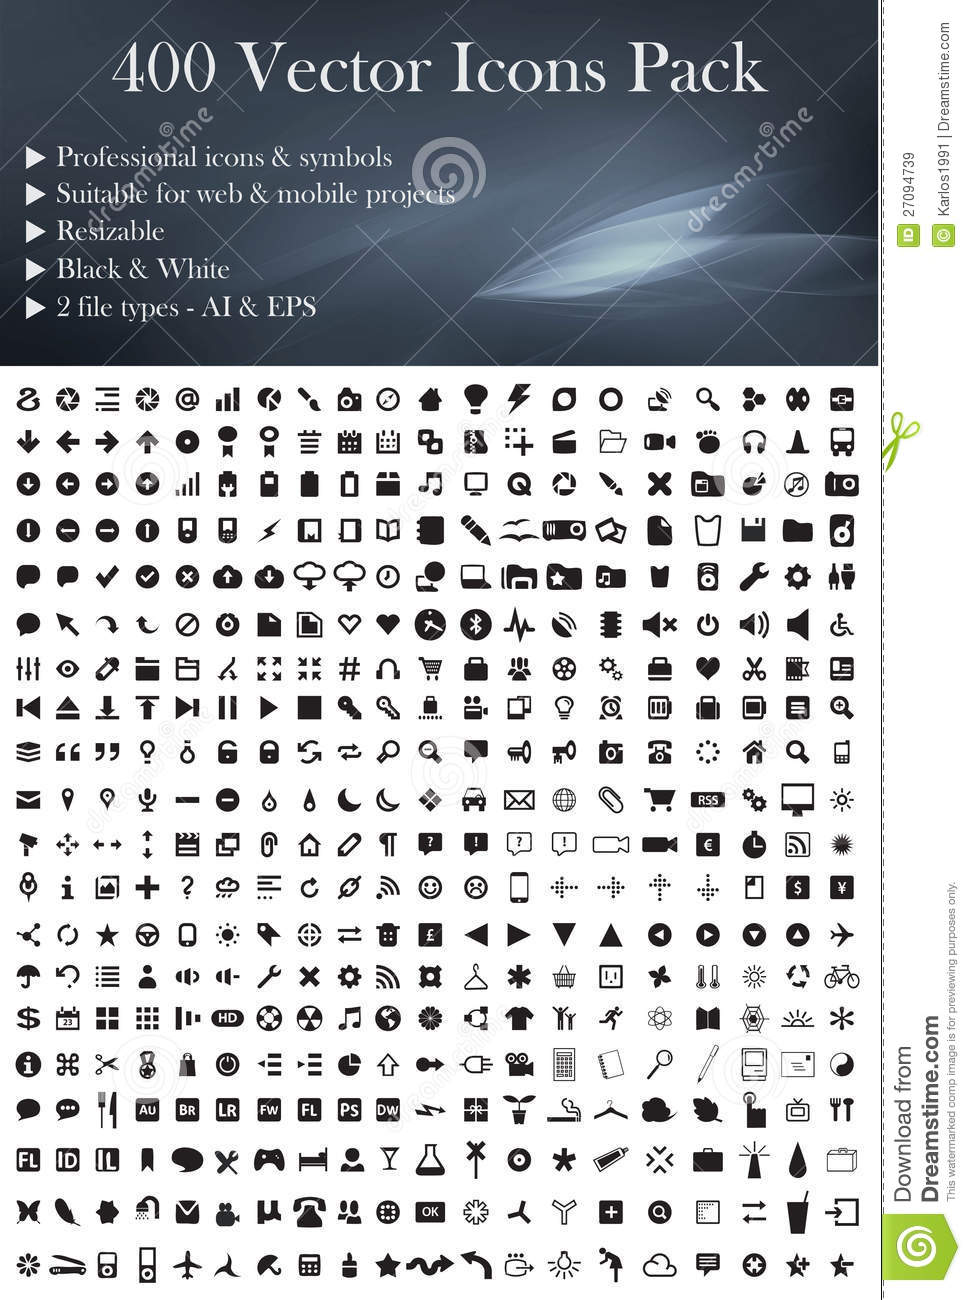 400 Vector Icons Pack (Black Version)